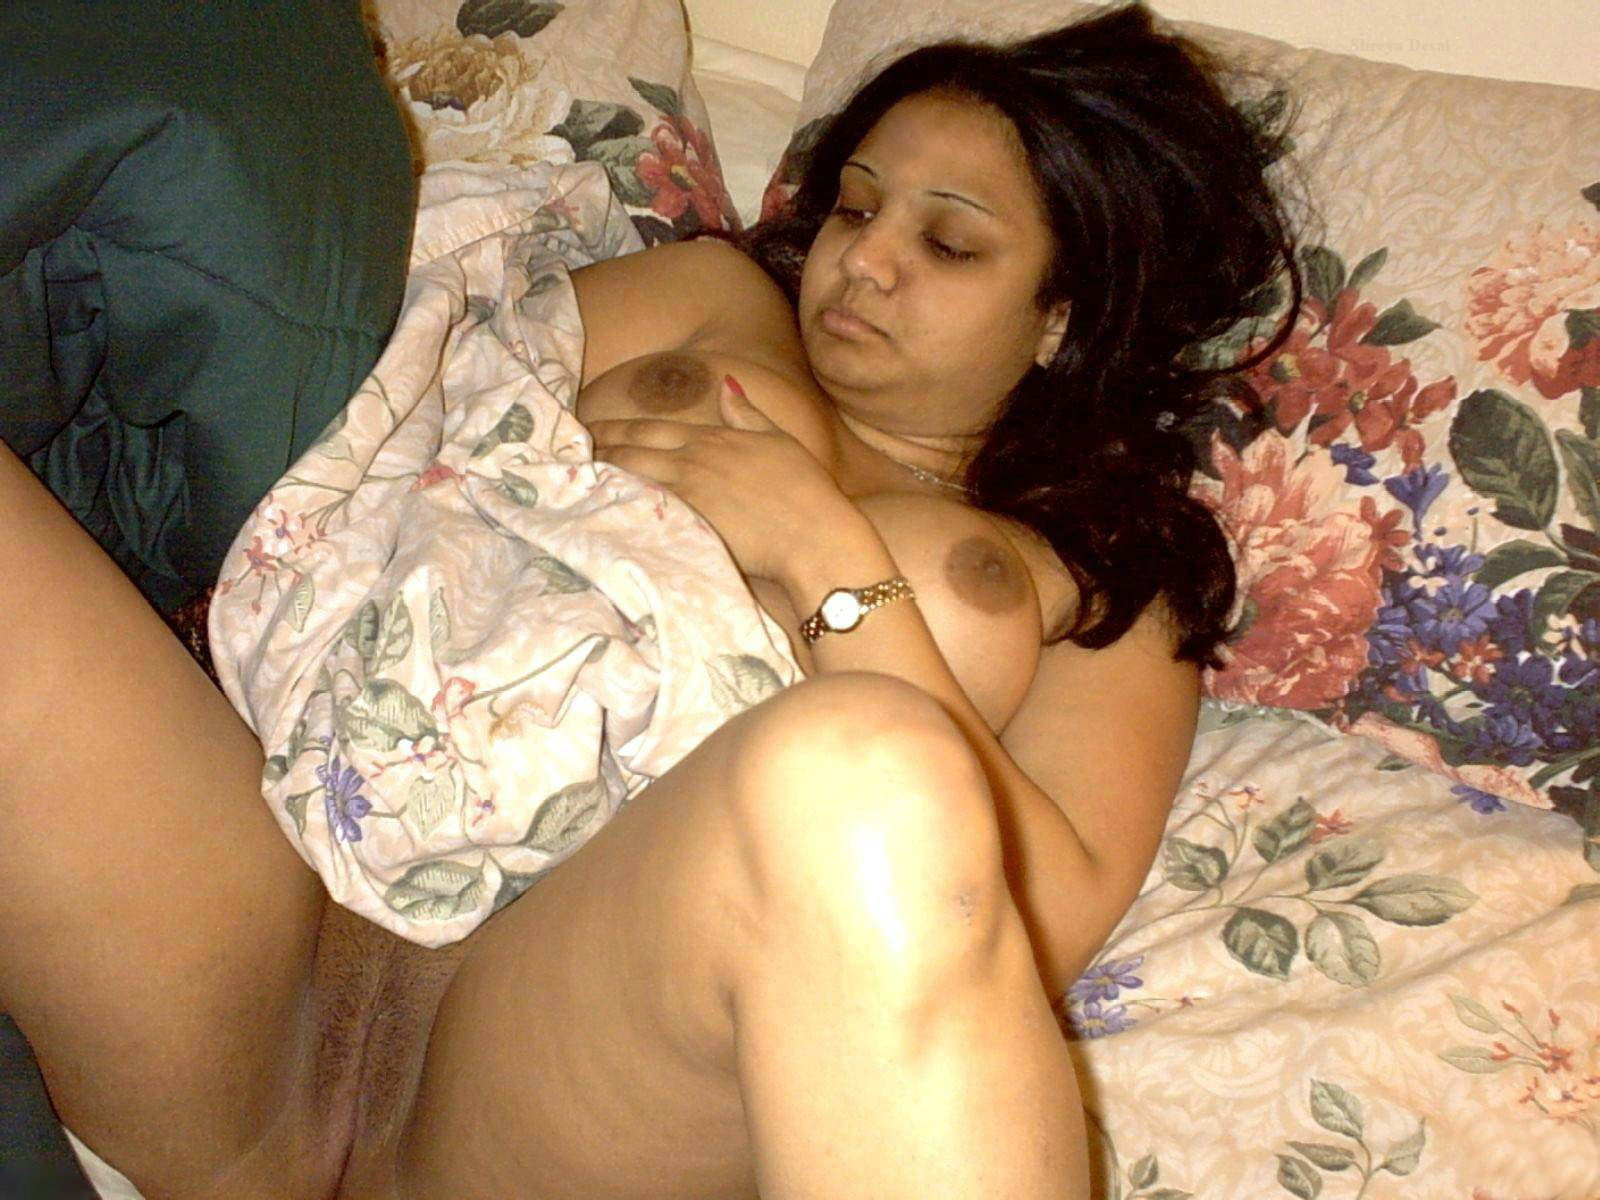 Chubby Indian Girlfriends Big Boobs, Big Shaven Pussy And Disgusting -9813